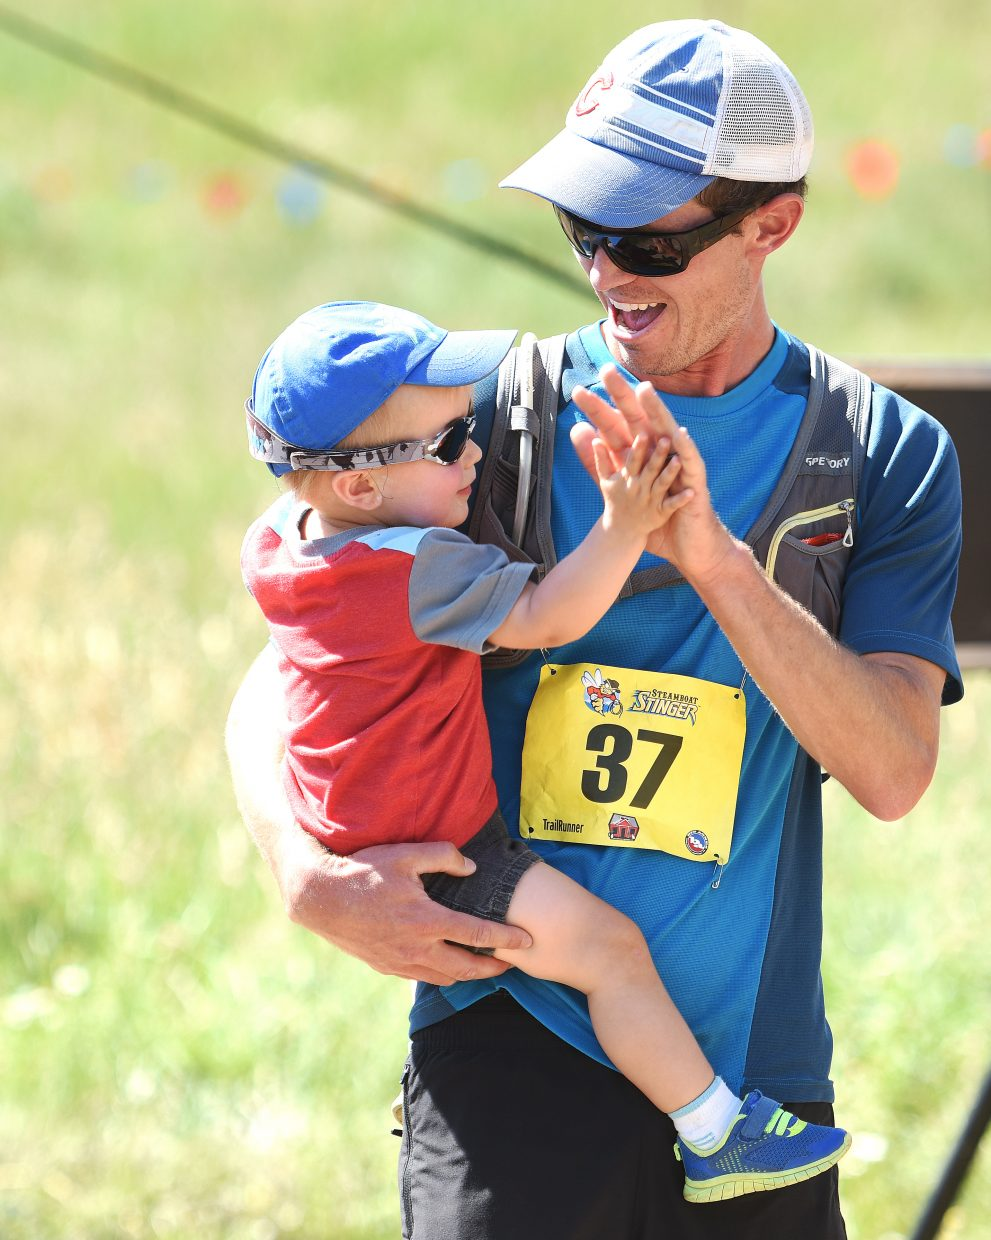 Gil Johnson, 21 months, gives his father, Nate Johnson, a high five Sunday after Nate finished the Steamboat Stinger trail marathon.